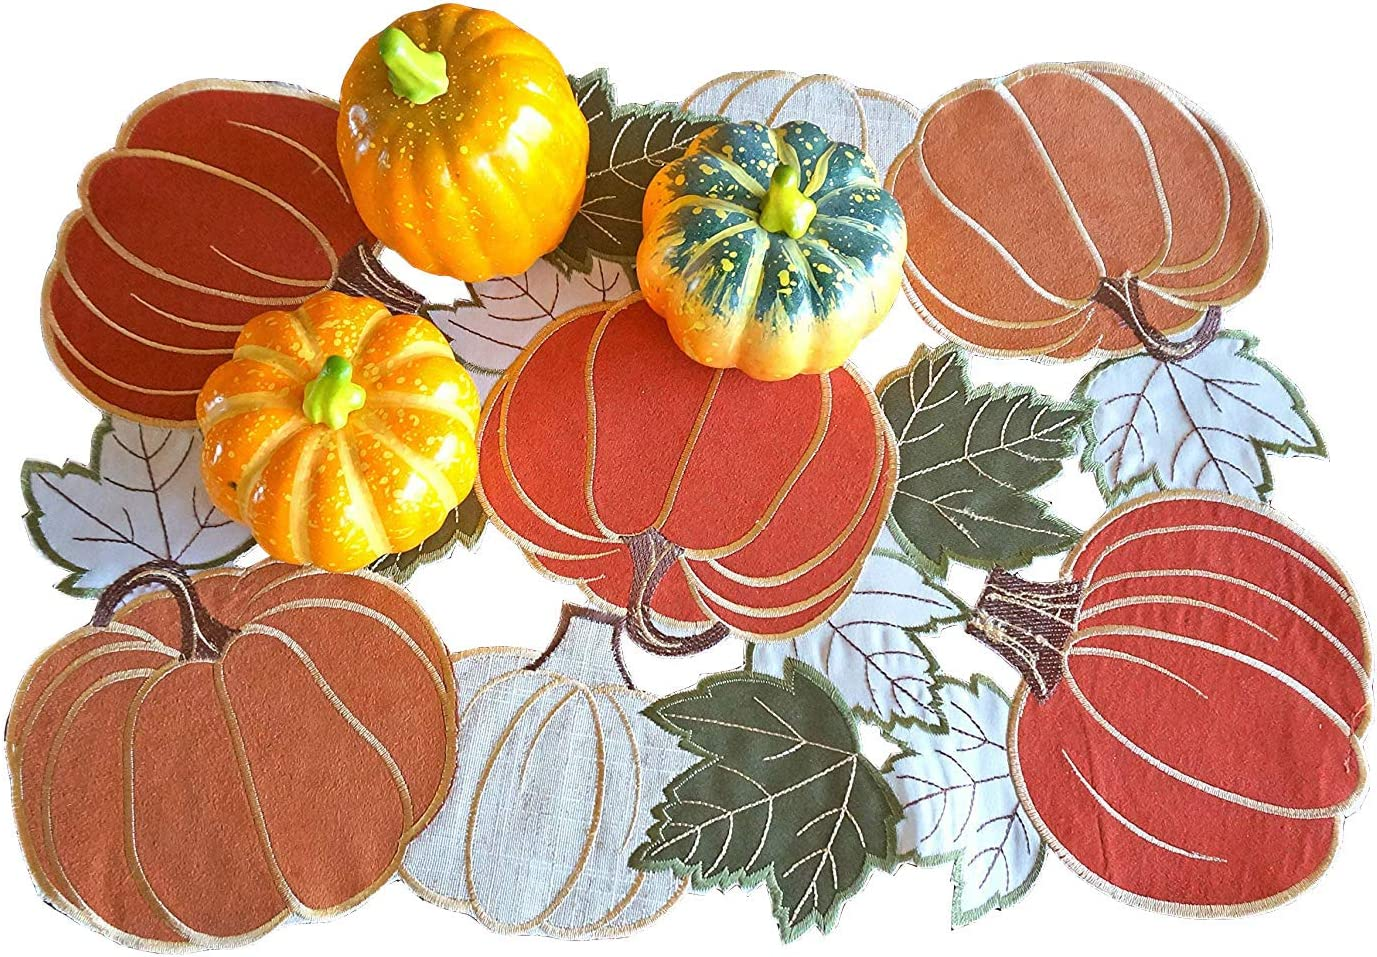 Thanksgiving Fall Harvest Placemats,Cutwork Applique Embroidered Orange Pumpkins Placemats for Home Dinner Holiday Festival Decorations,13×18inch Set of 4